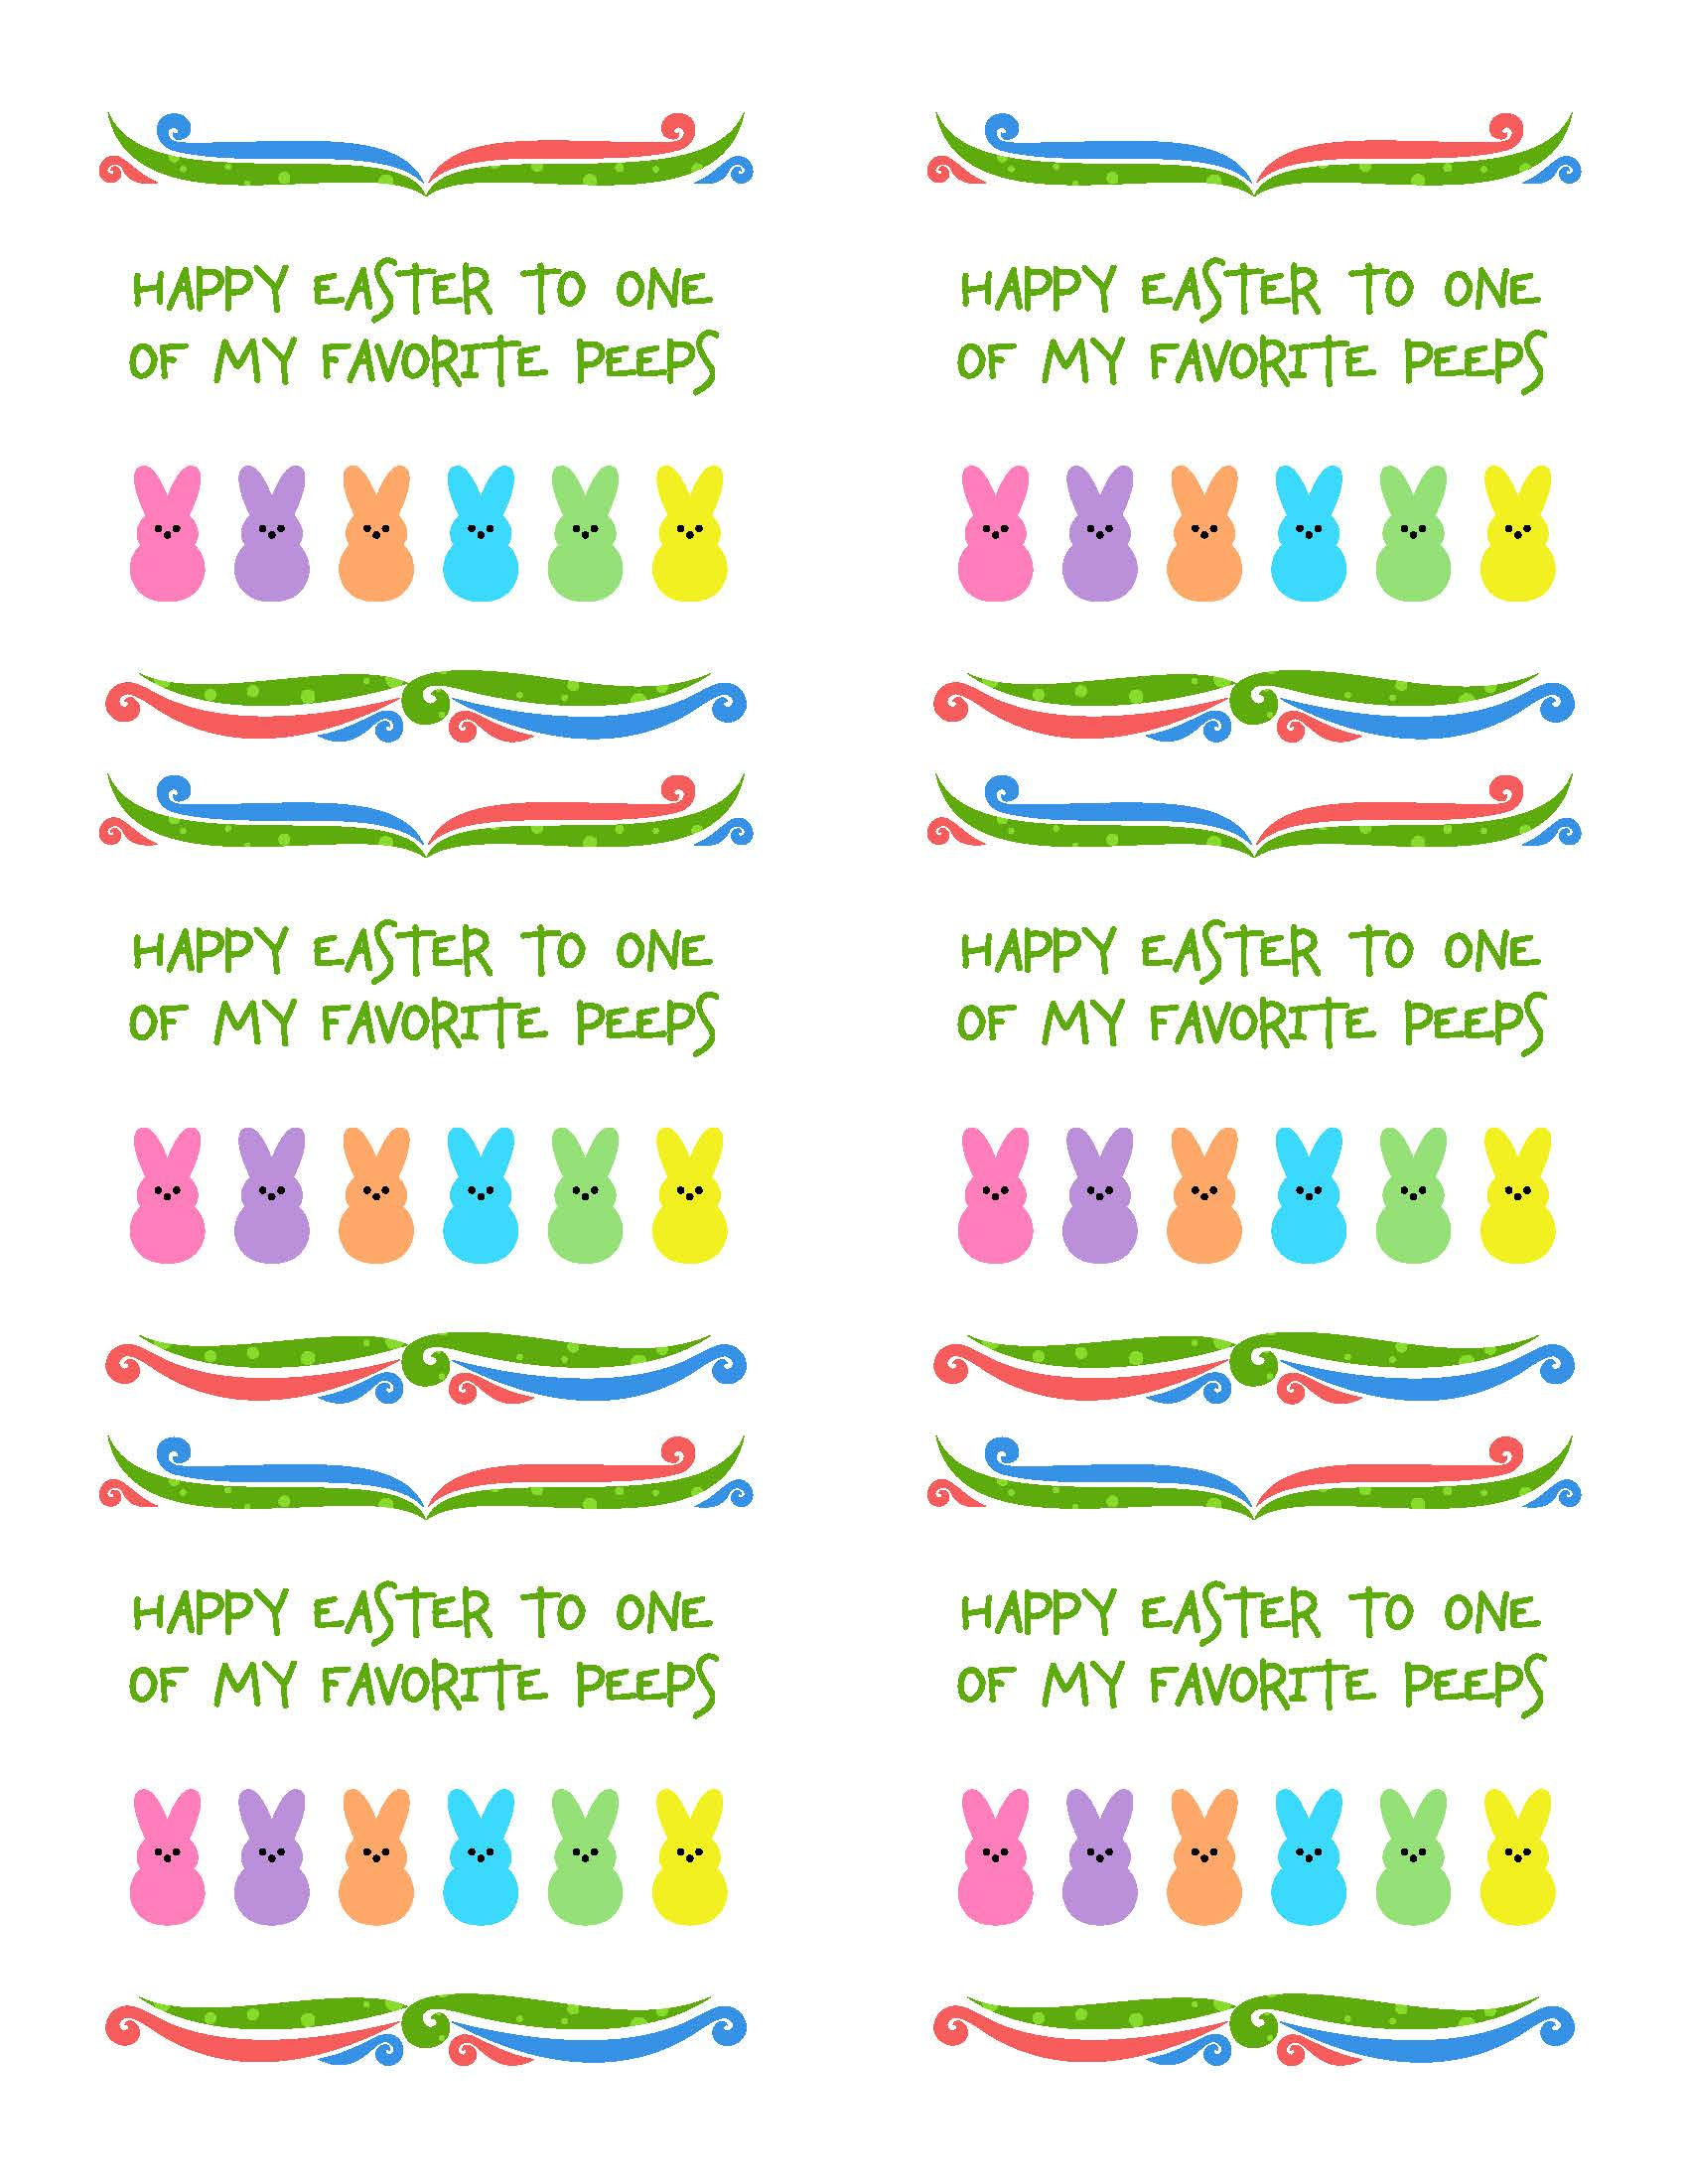 18.02.09 - Easter PEEPS Labels_Page_6.jpg